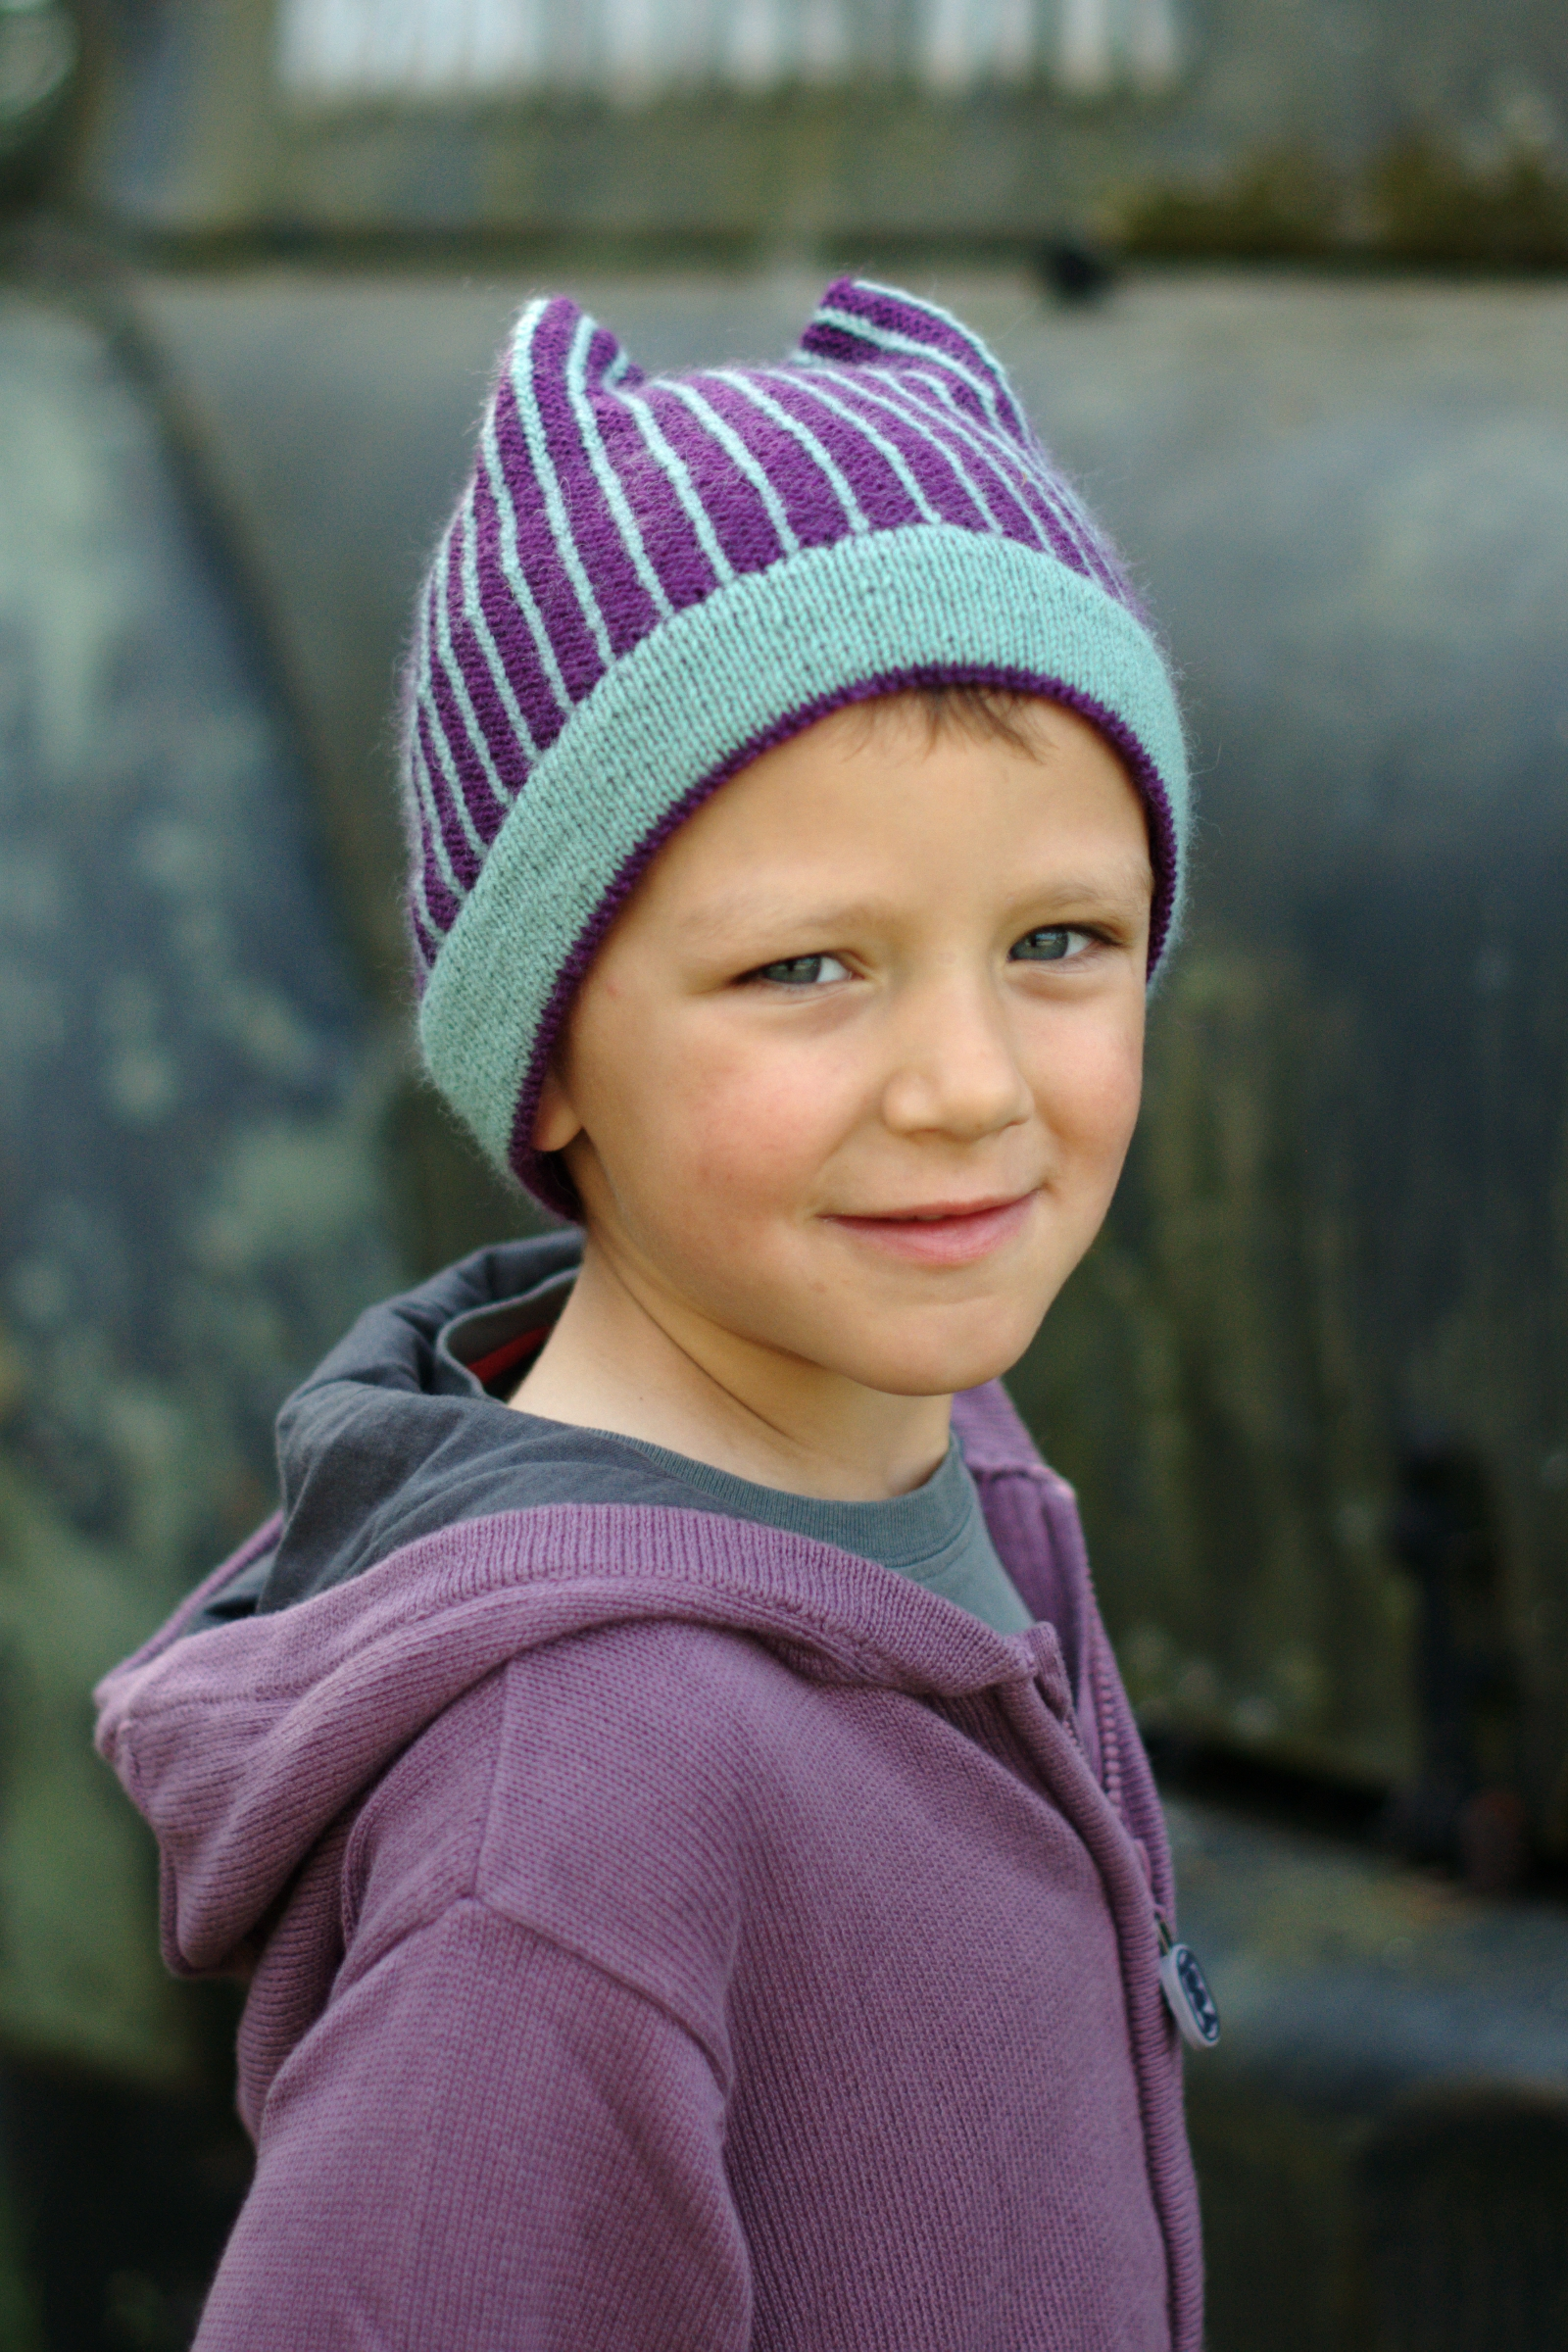 Mercury stranded pinstripe beanie knitting pattern for kids